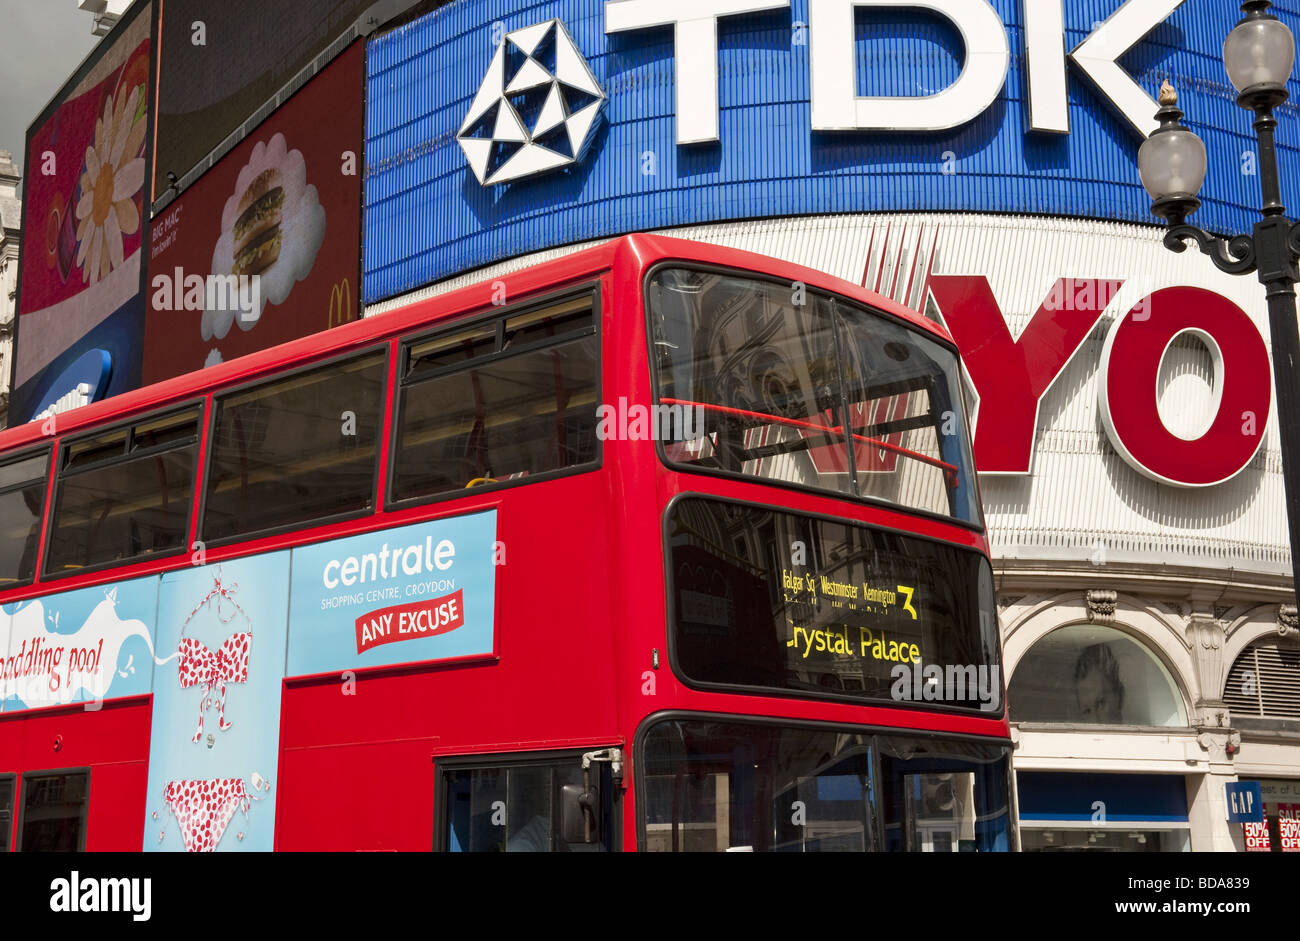 Close up of No 3 red double decker  London bus in front of advertising hoardings in Picadilly, London UK capital - Stock Image